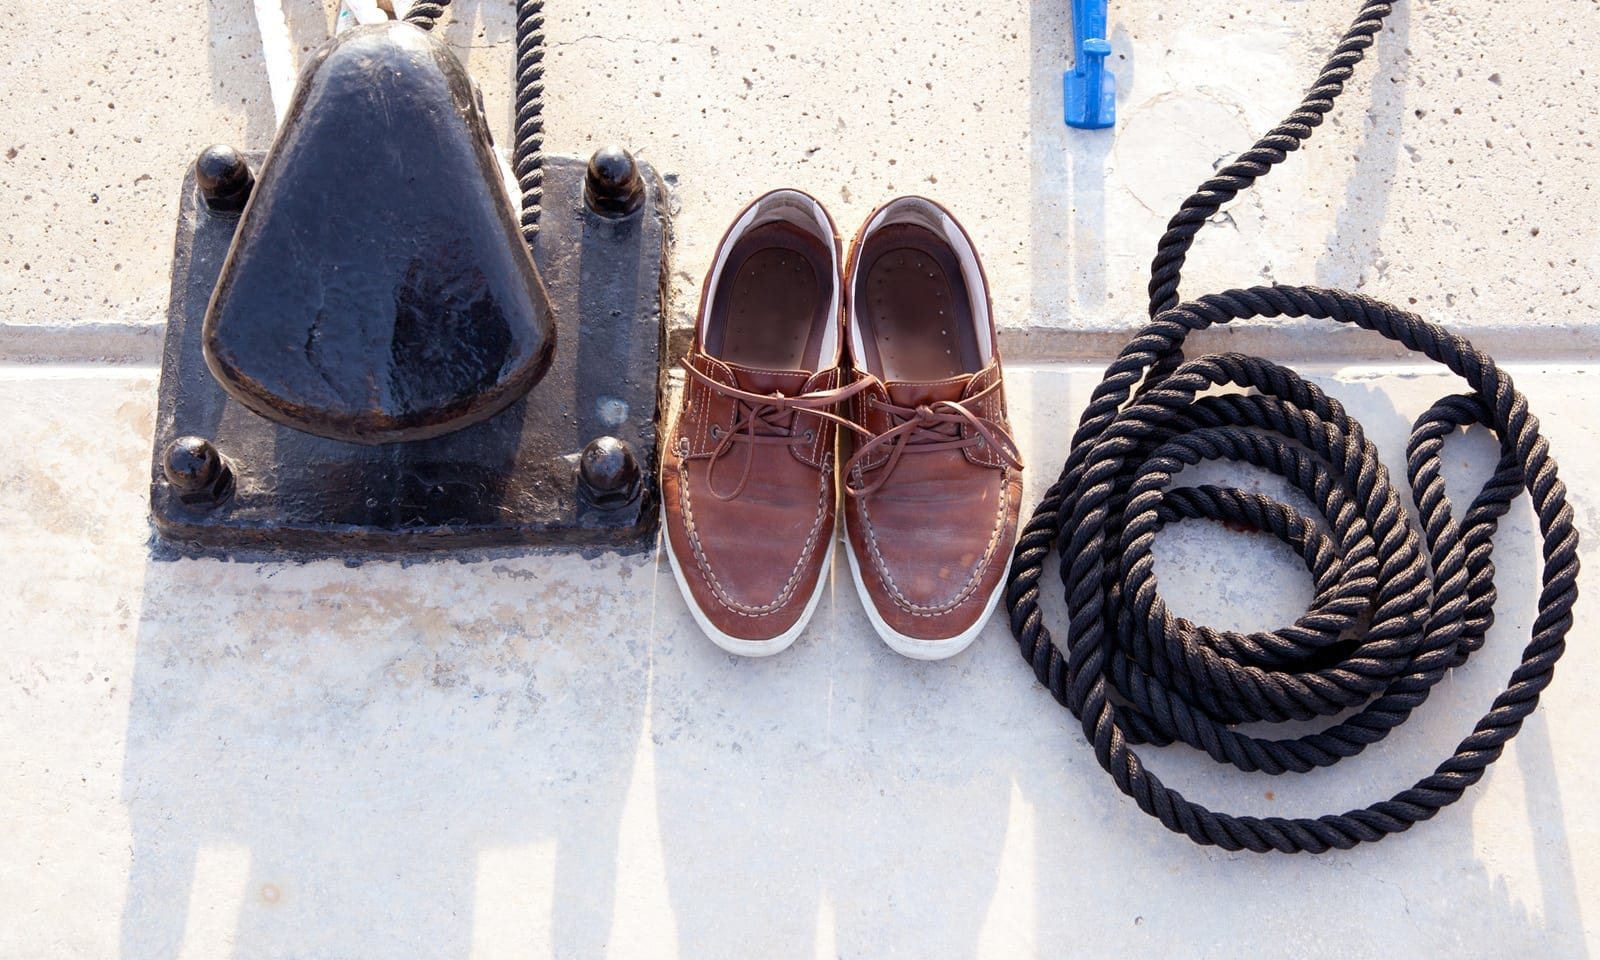 boat-shoes-image-1